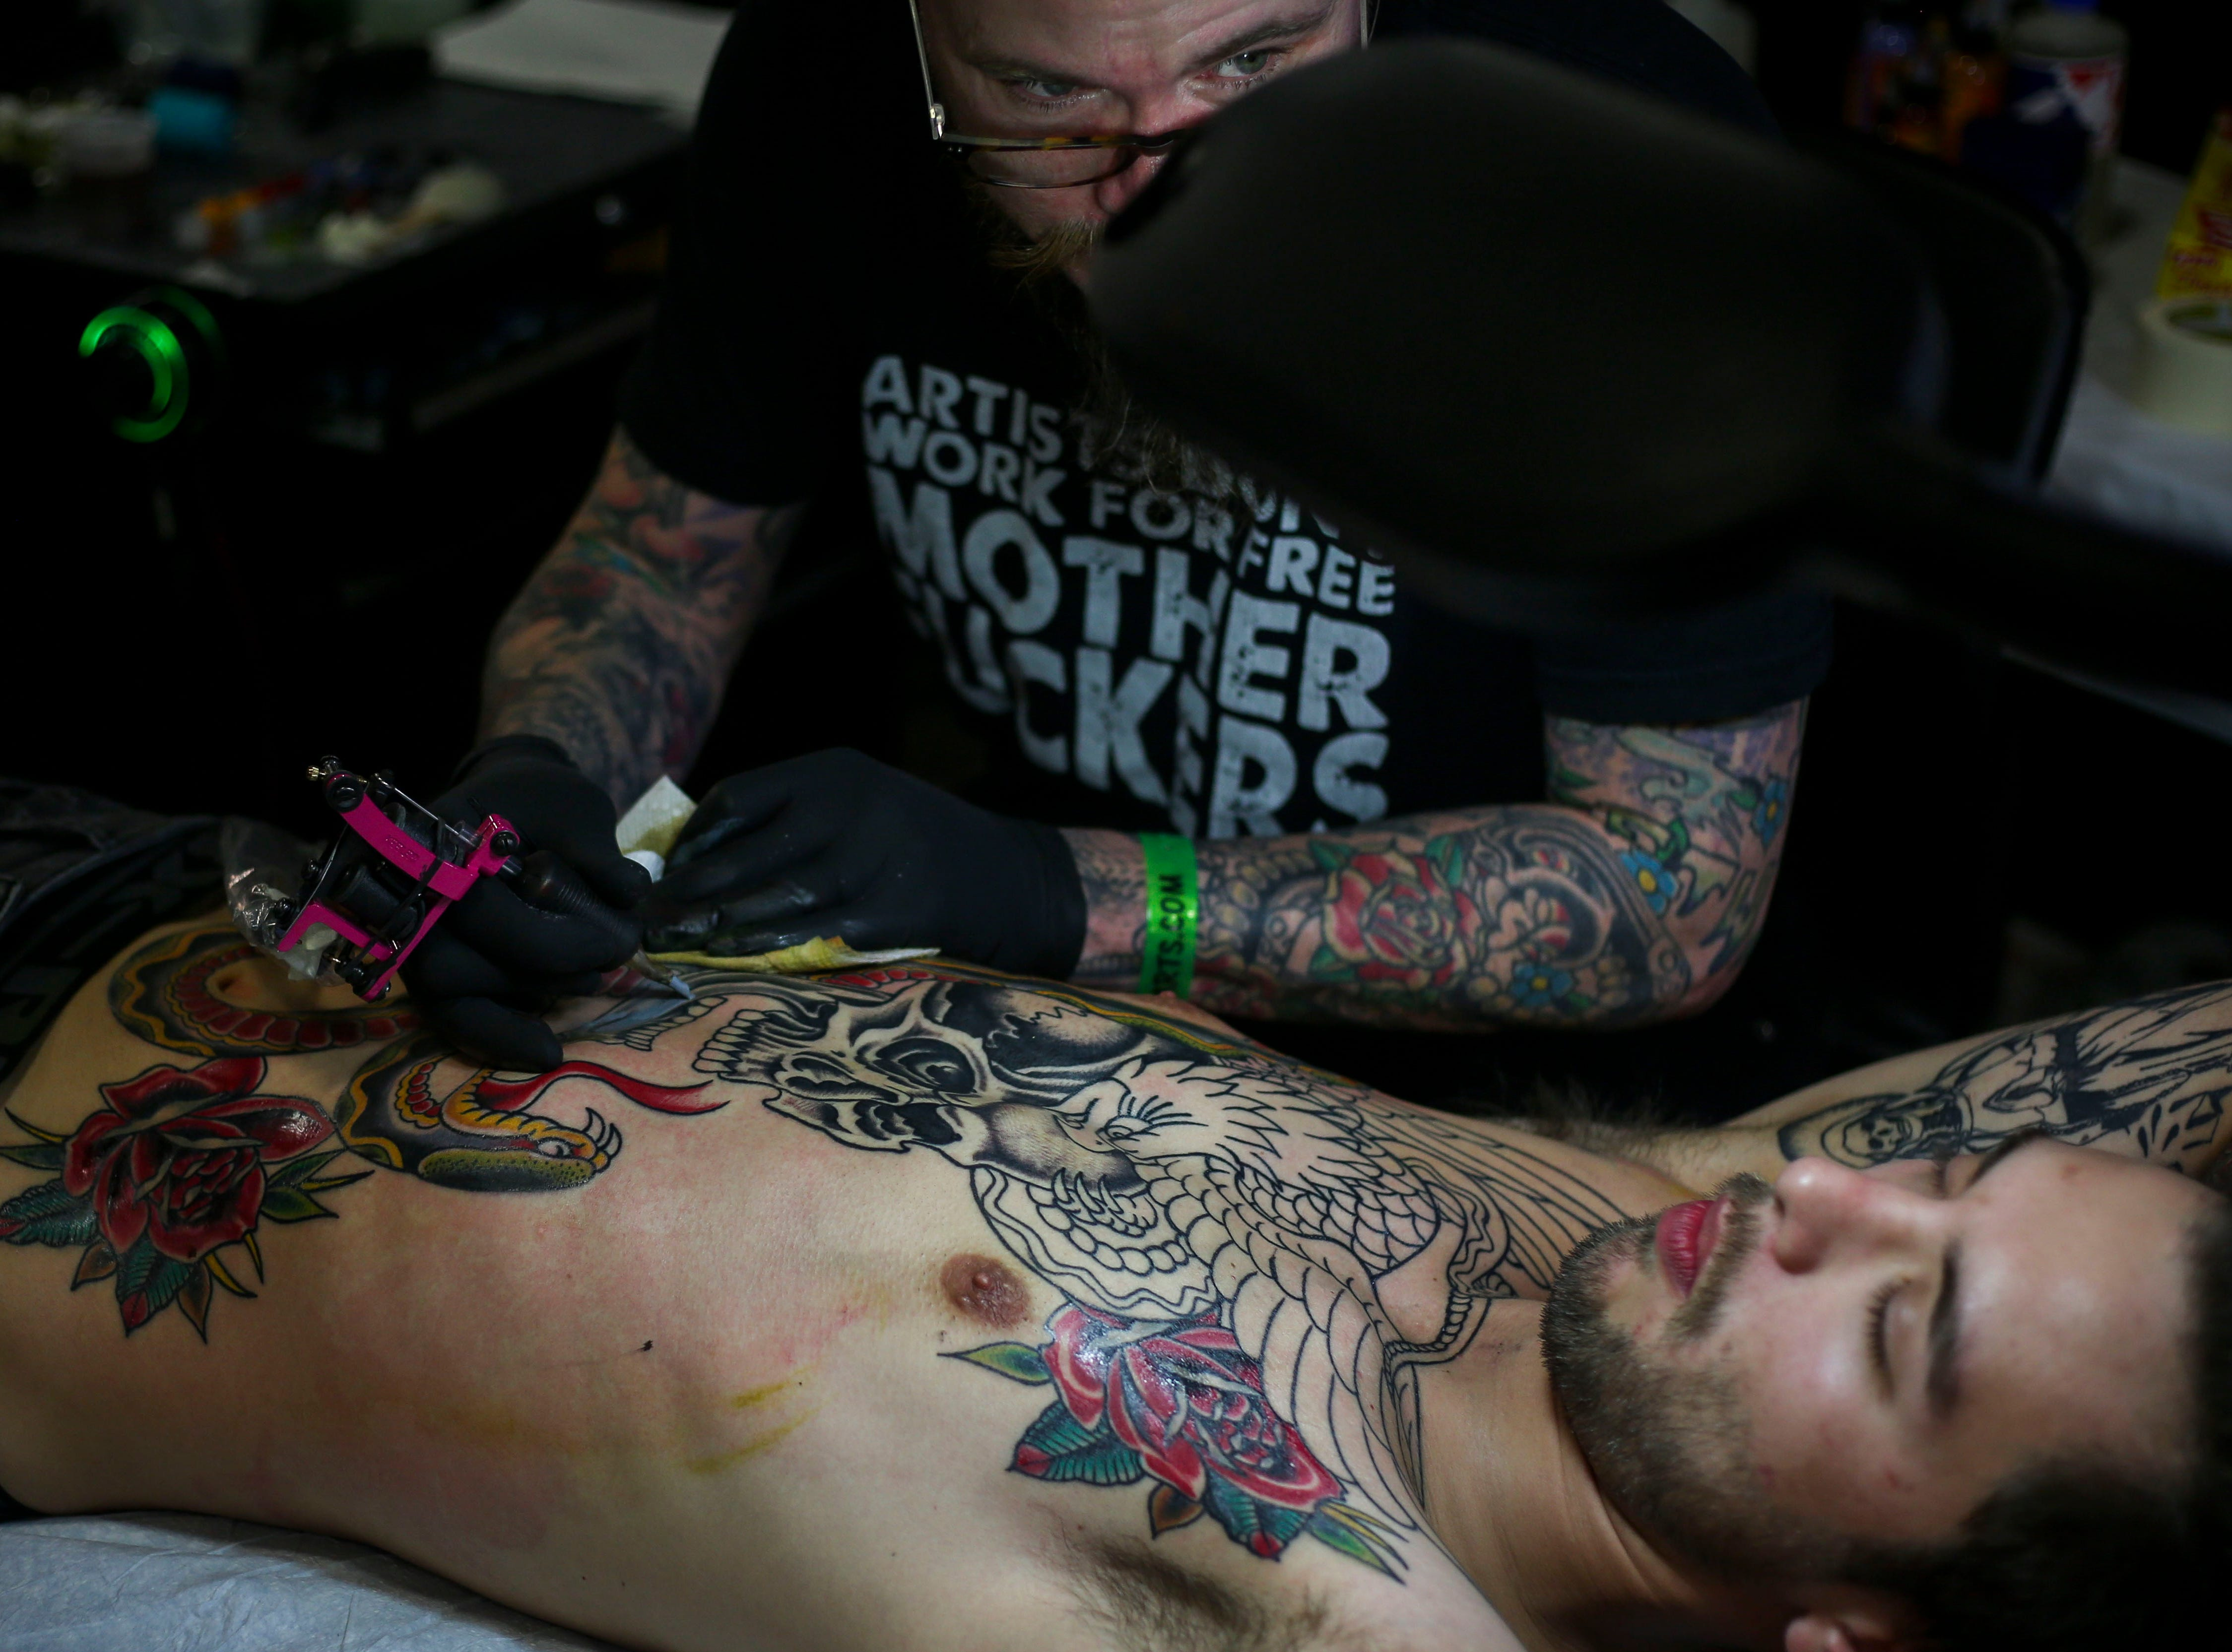 Brado Revell, Love and Devotion Historic Tattoo, tattoos Tyler Rado, from Elizabethtown, during the 8th Annual Louisville Tattoo Arts Convention put on by Villain Arts at the Kentucky Expo Center in Louisville, Ky. on Saturday, April 13, 2019.